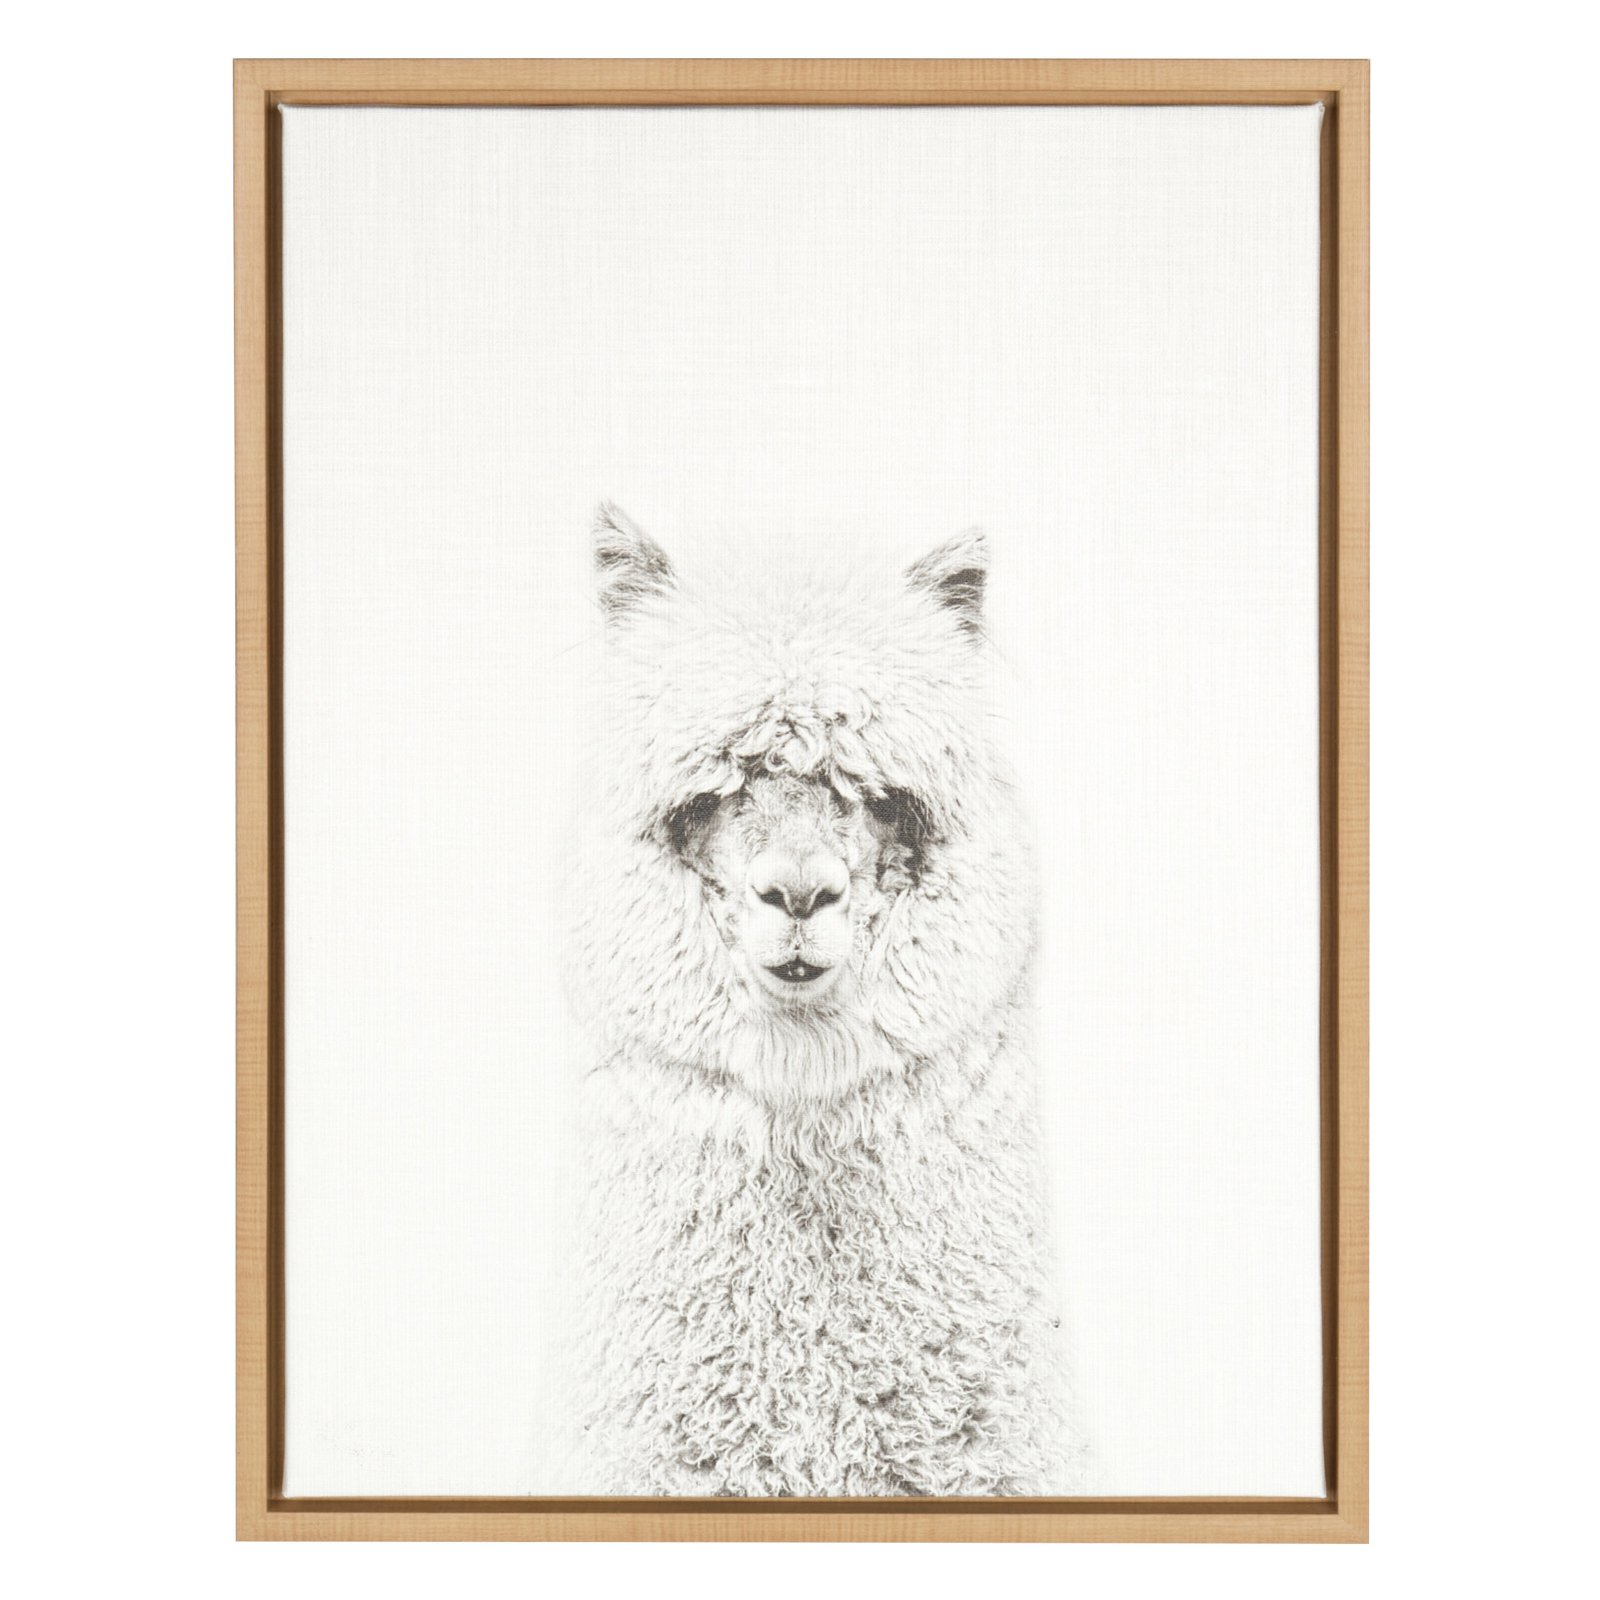 Design Ovation Sylvie Hairy Alpaca Black And White Portrait Canvas Wall Art By Simon Te Tai by Design Ovation